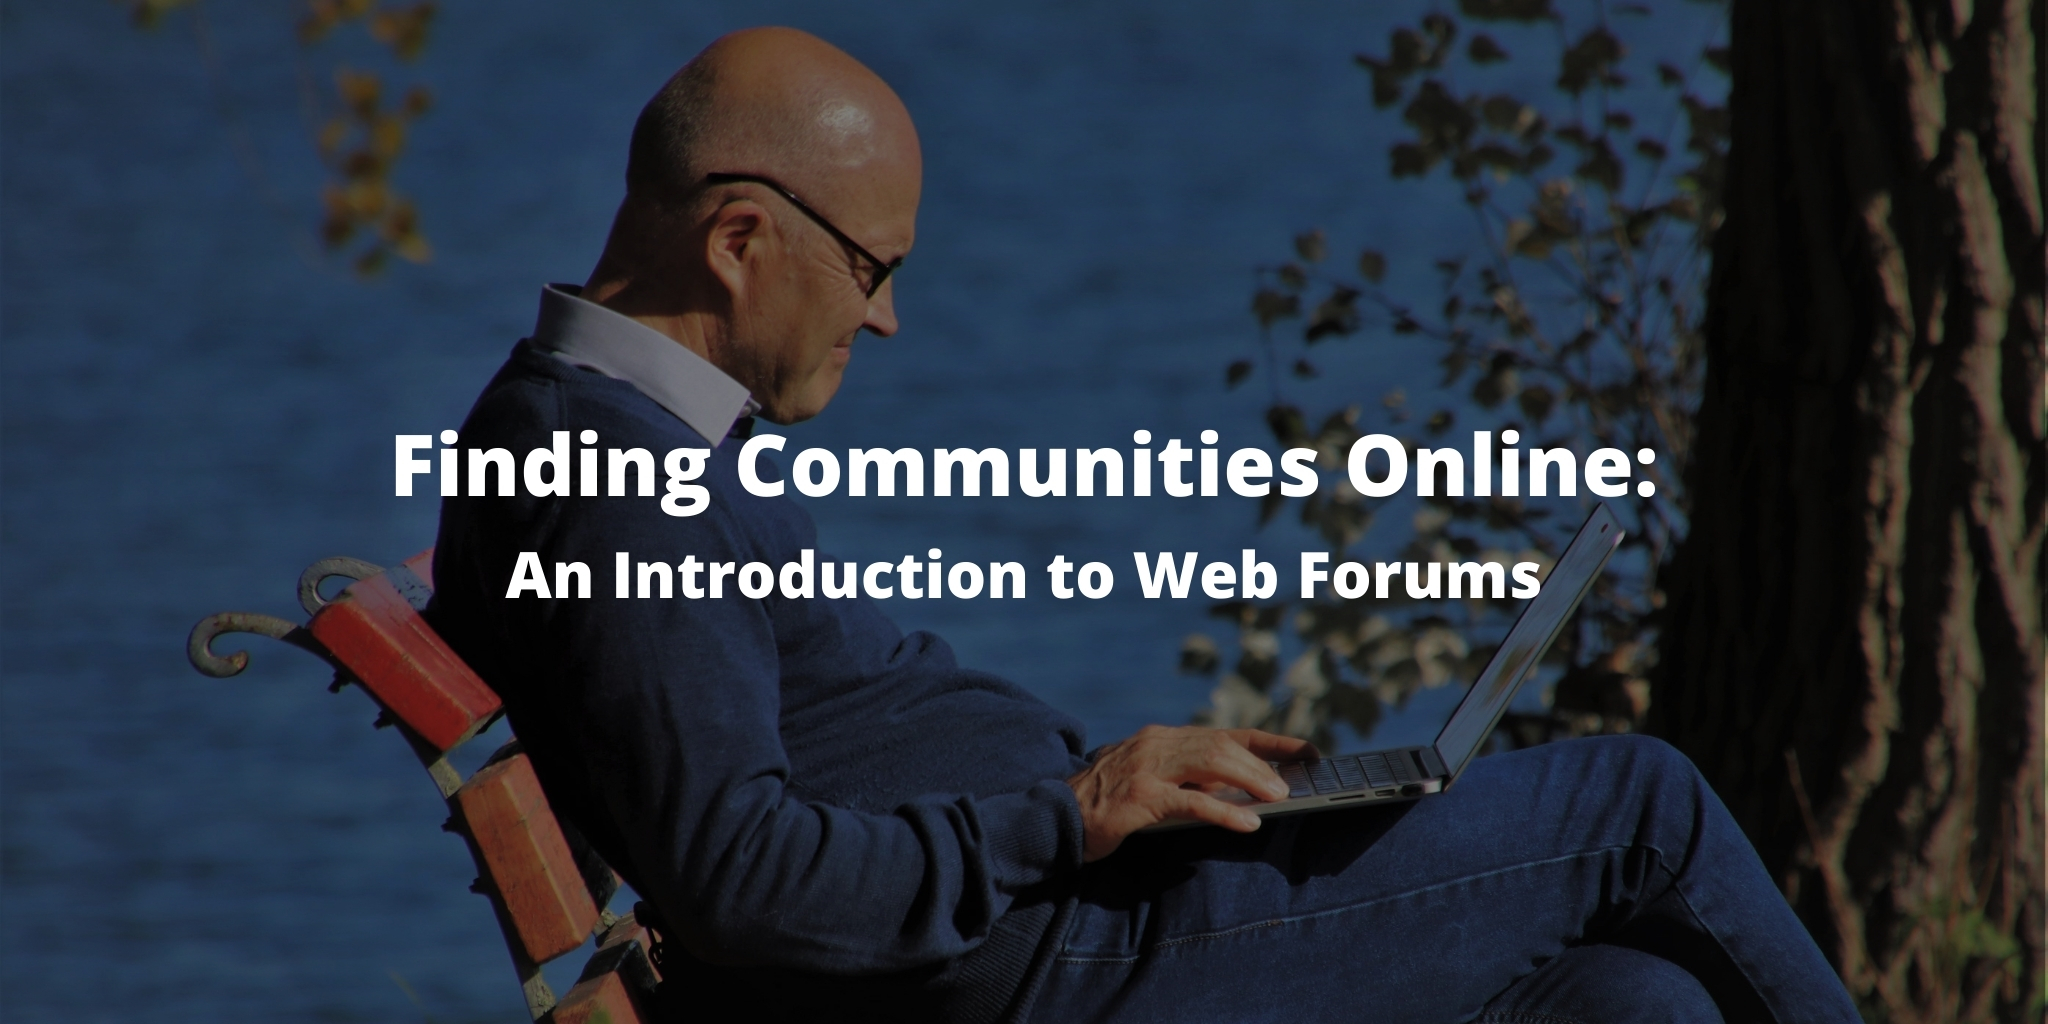 Finding Communities Online: An Introduction to Web Forums